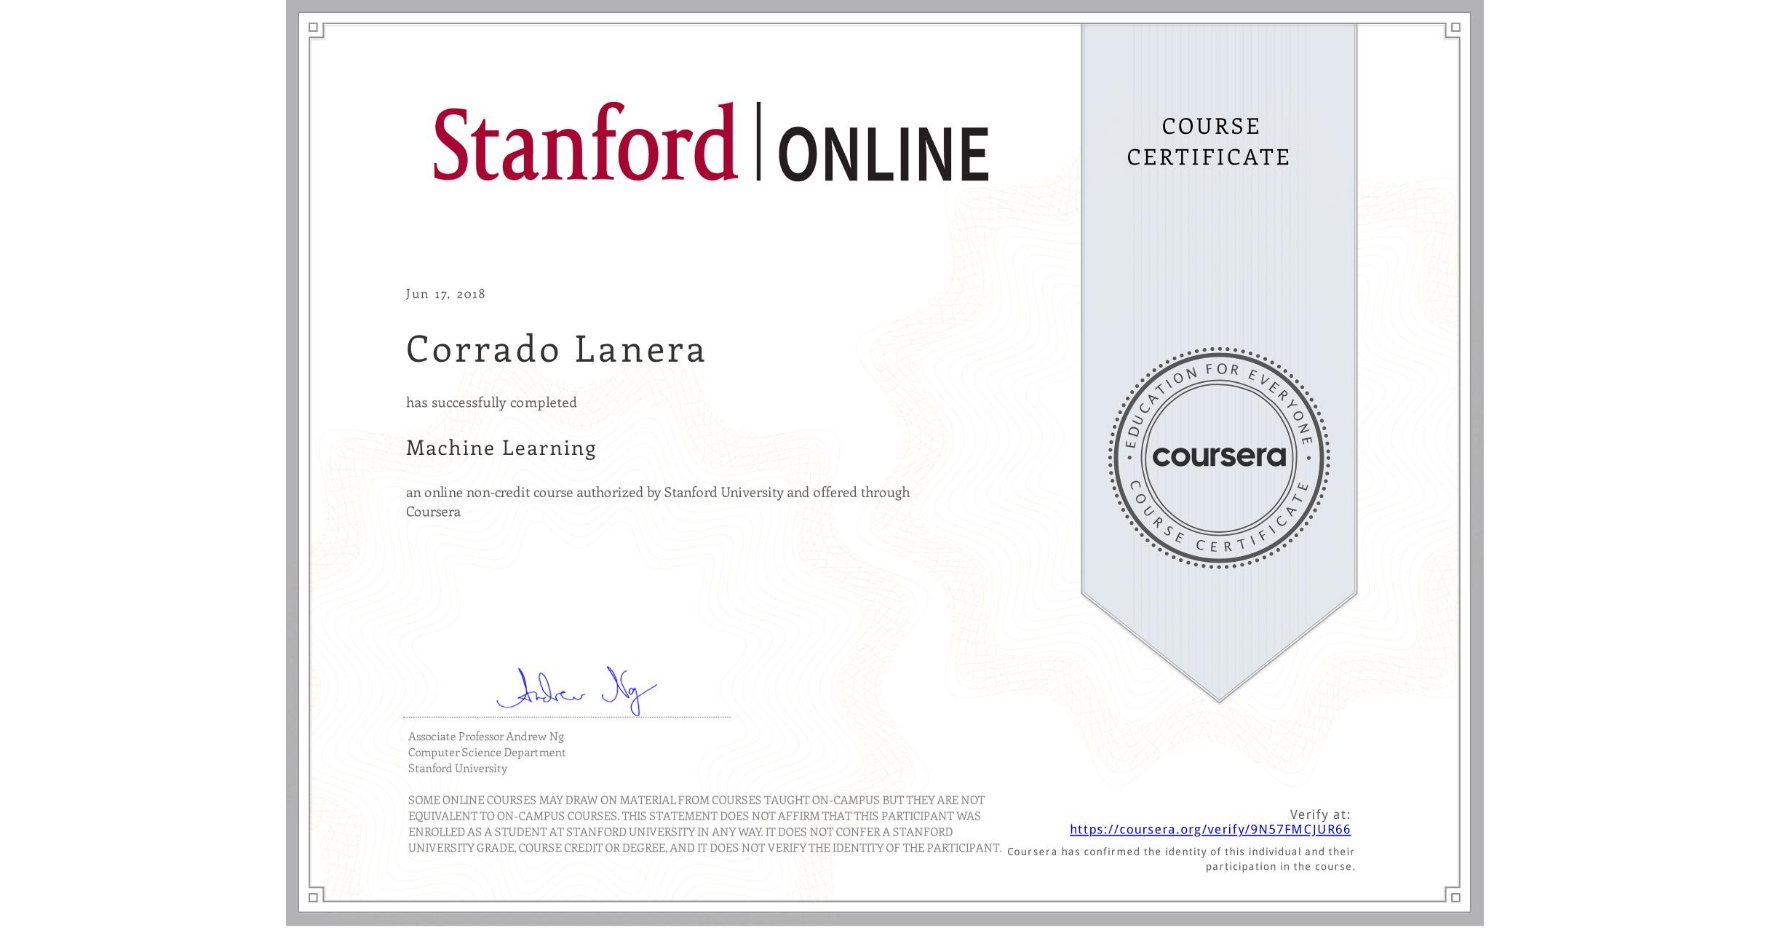 View certificate for Corrado Lanera, Machine Learning, an online non-credit course authorized by Stanford University and offered through Coursera